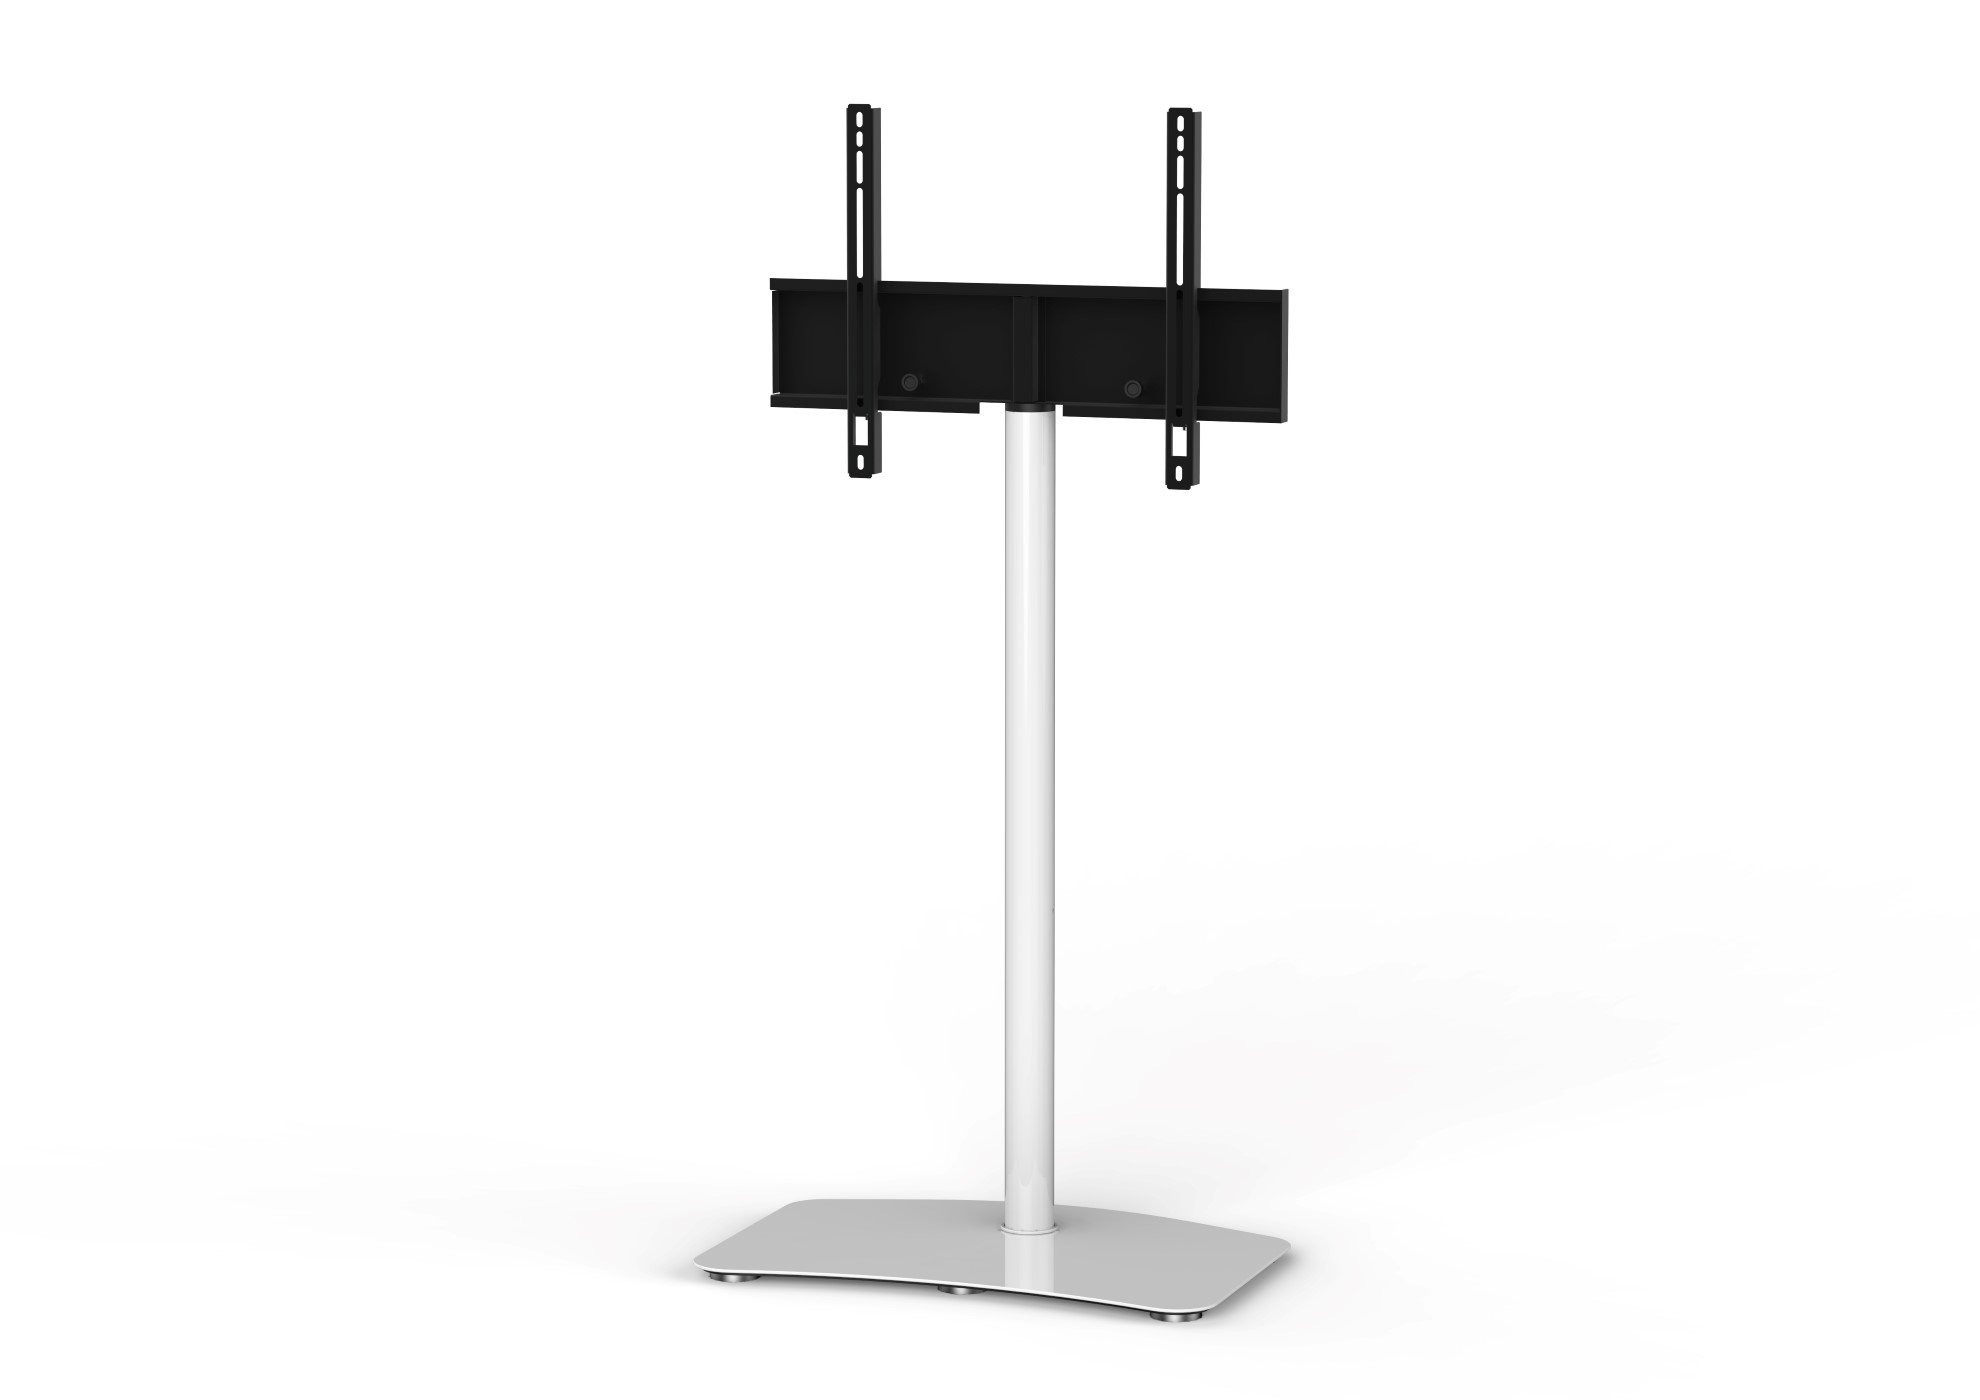 Sonorous PL-2800 Modern TV Floor Stand Mount/Bracket for Sizes up to 65'' (Steel Construction) - White